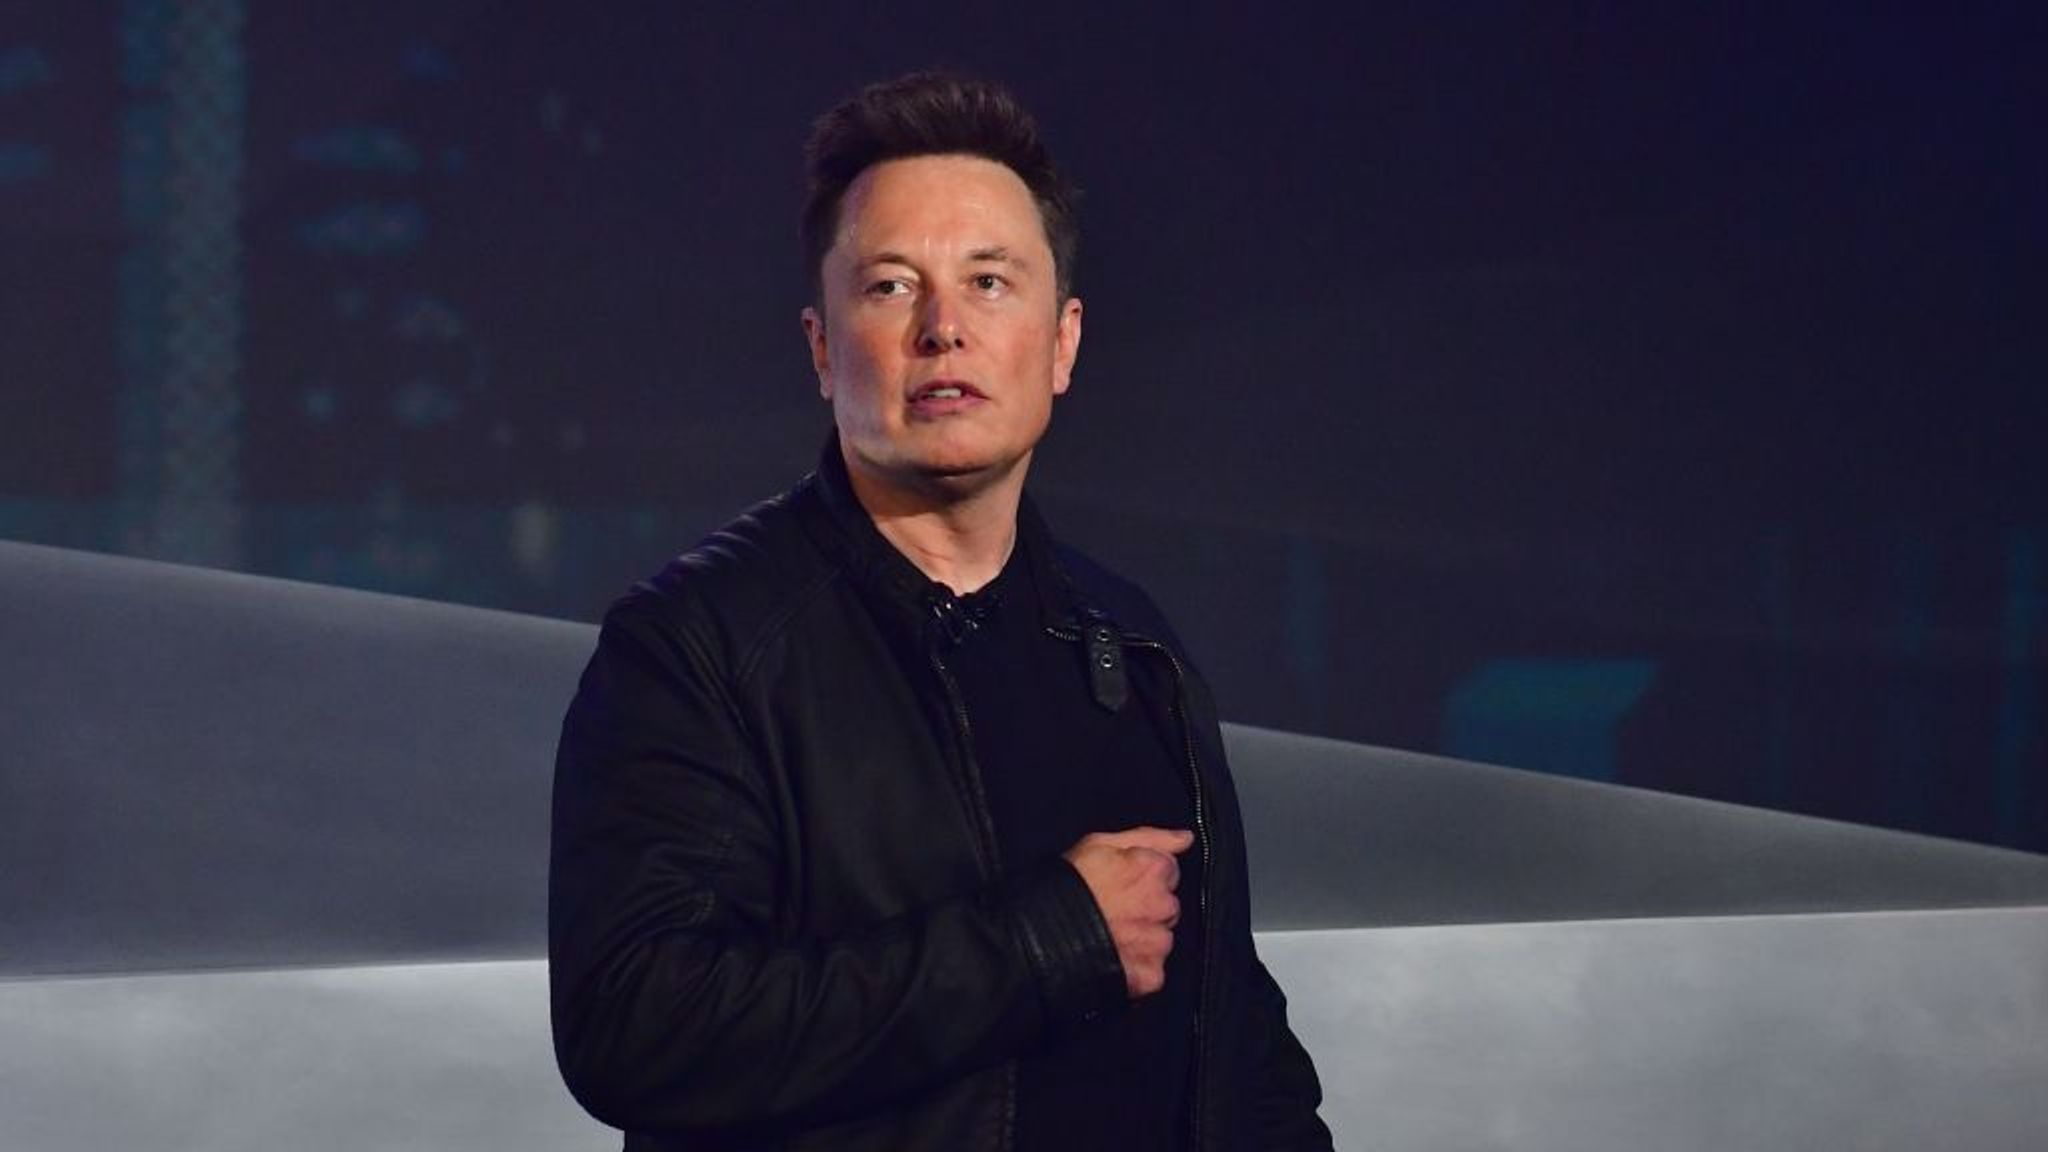 SpaceX and Tesla documents leaked online by hackers